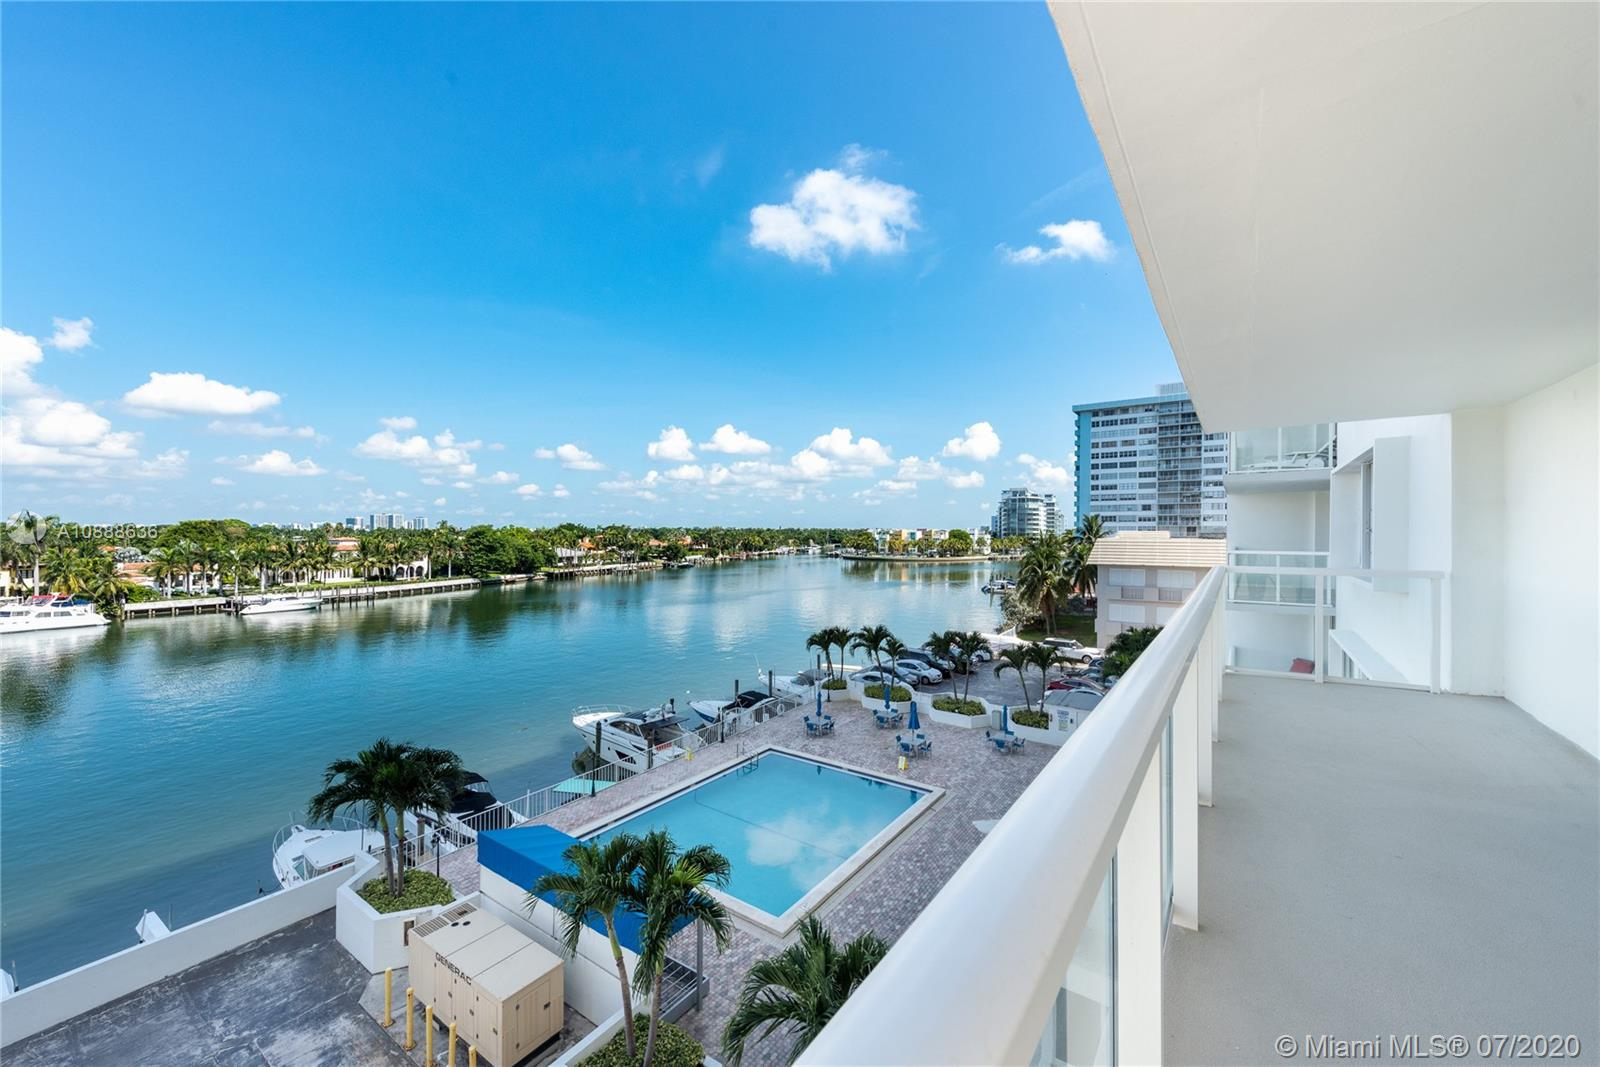 """Beautiful 2 bed/2 bath PLUS DEN/OFFICE. Located in the Millionaires Road. 1940 sqft with view to Intercostal! All assessments fully paid great apartment for Urban families with lots of space and storage. """" As per condo rules unit cannot be rented for the first 2 years after purchase""""."""